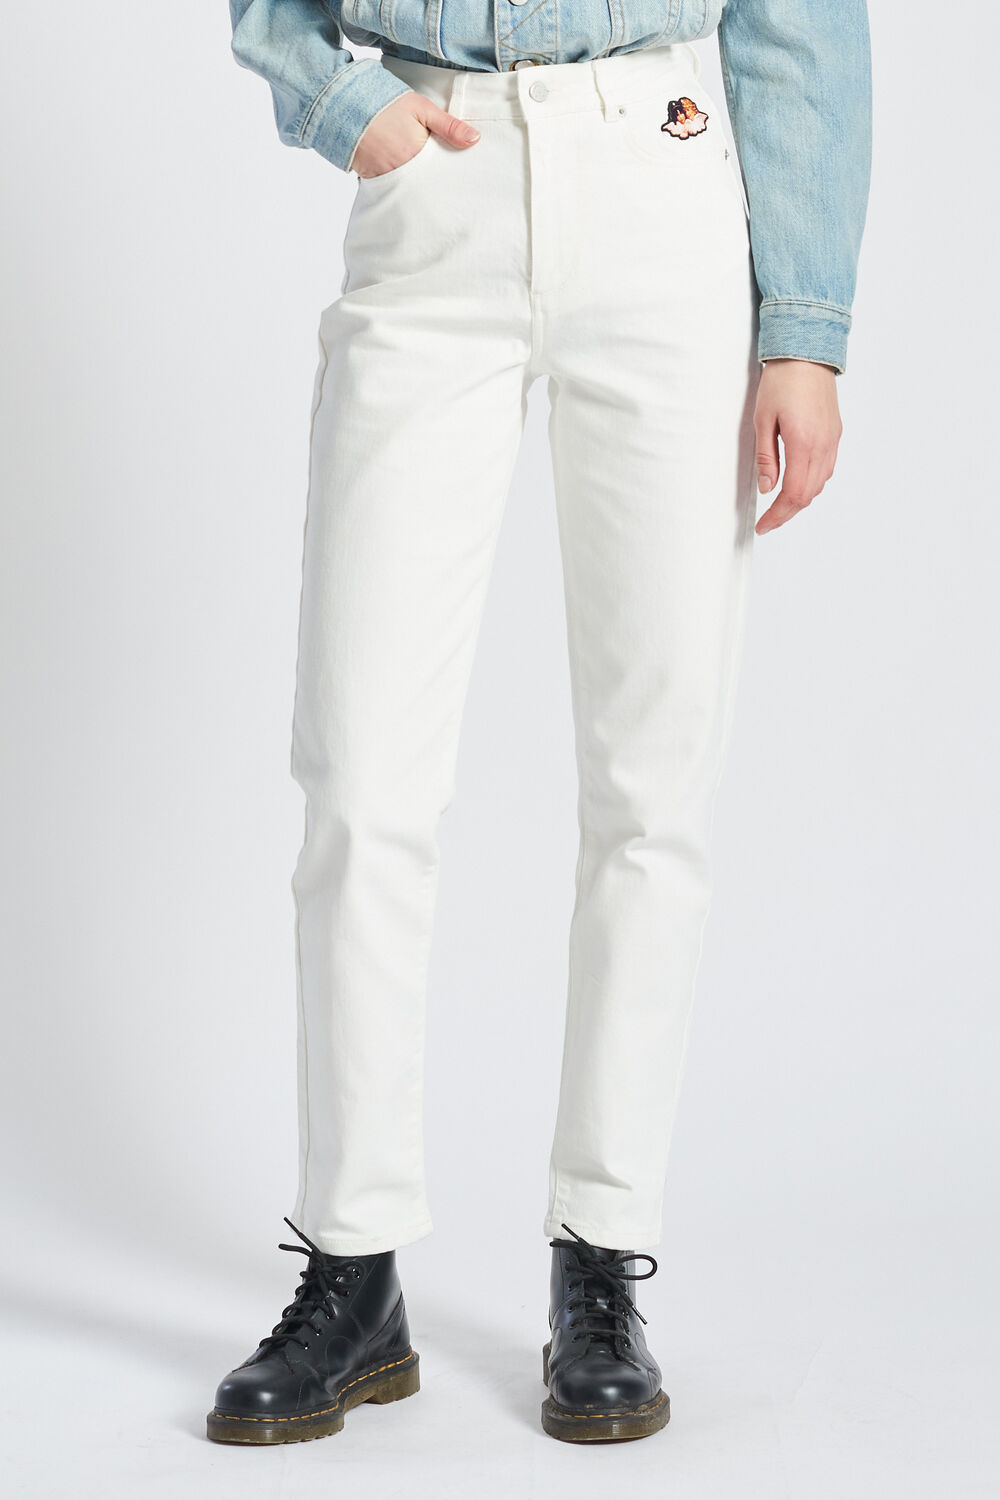 Icon Angels Tara Tapered Jeans Cream